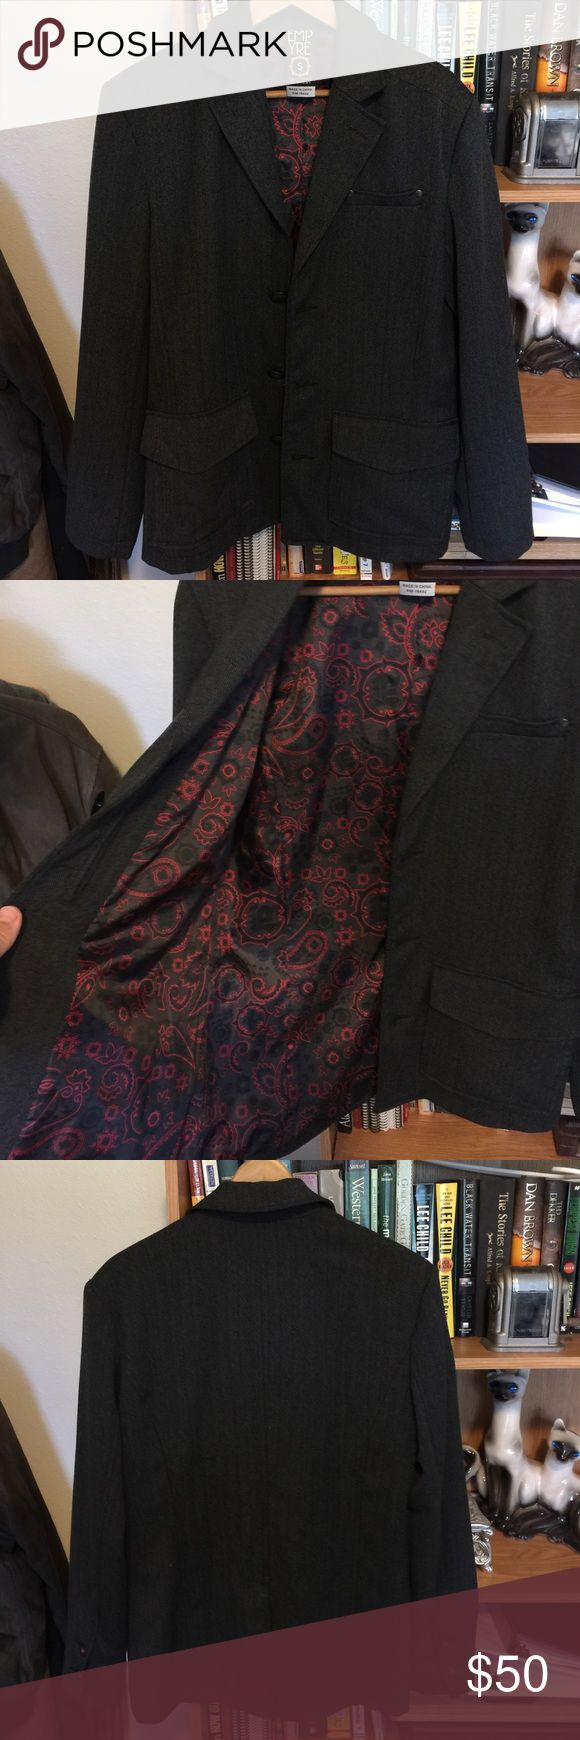 Amazing Empyre dress jacket. Men's size S This is N amazing jacket. 3 button Empyre jacket with an awesome lining. This jacket is too small for me and as upset as I am about that, it's your opportunity to look super fly. Great coat in great condition. Empyre Jackets & Coats Pea Coats